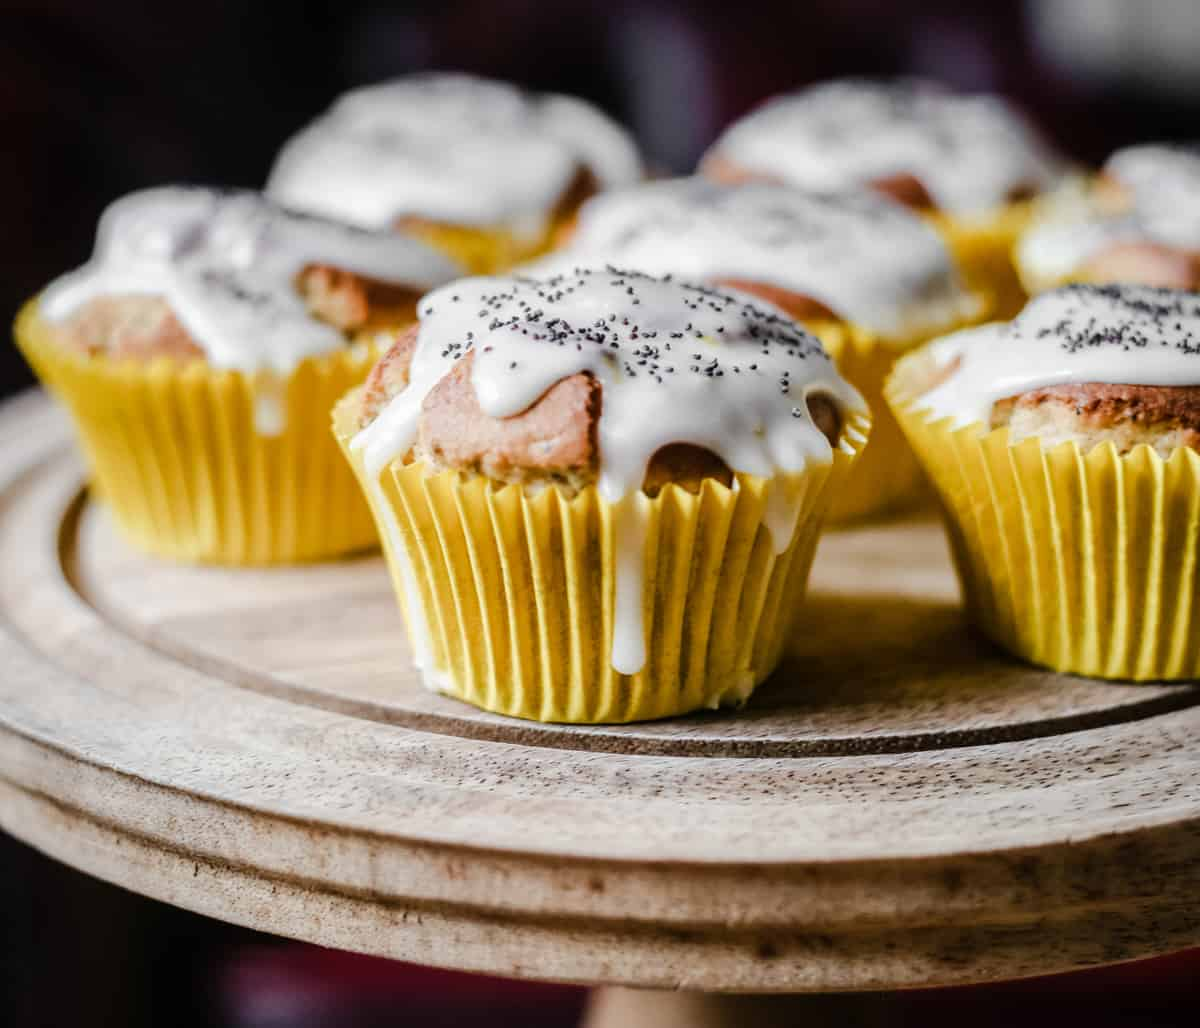 Lemon and Poppy Seed Muffins on a wooden cake stand